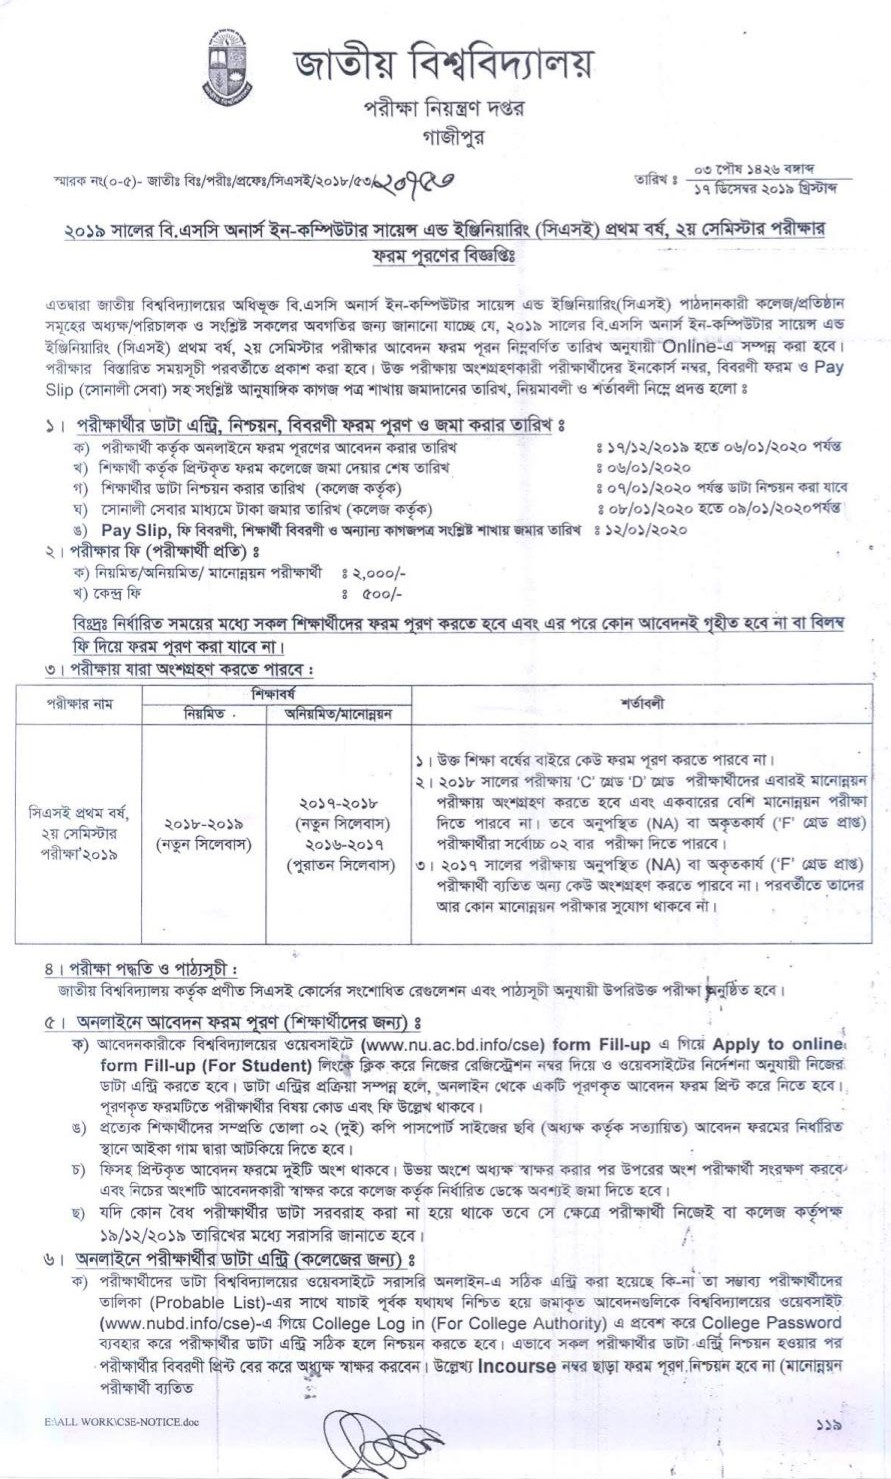 nu cse 1st year 2nd semester form fill up notice 2019-20